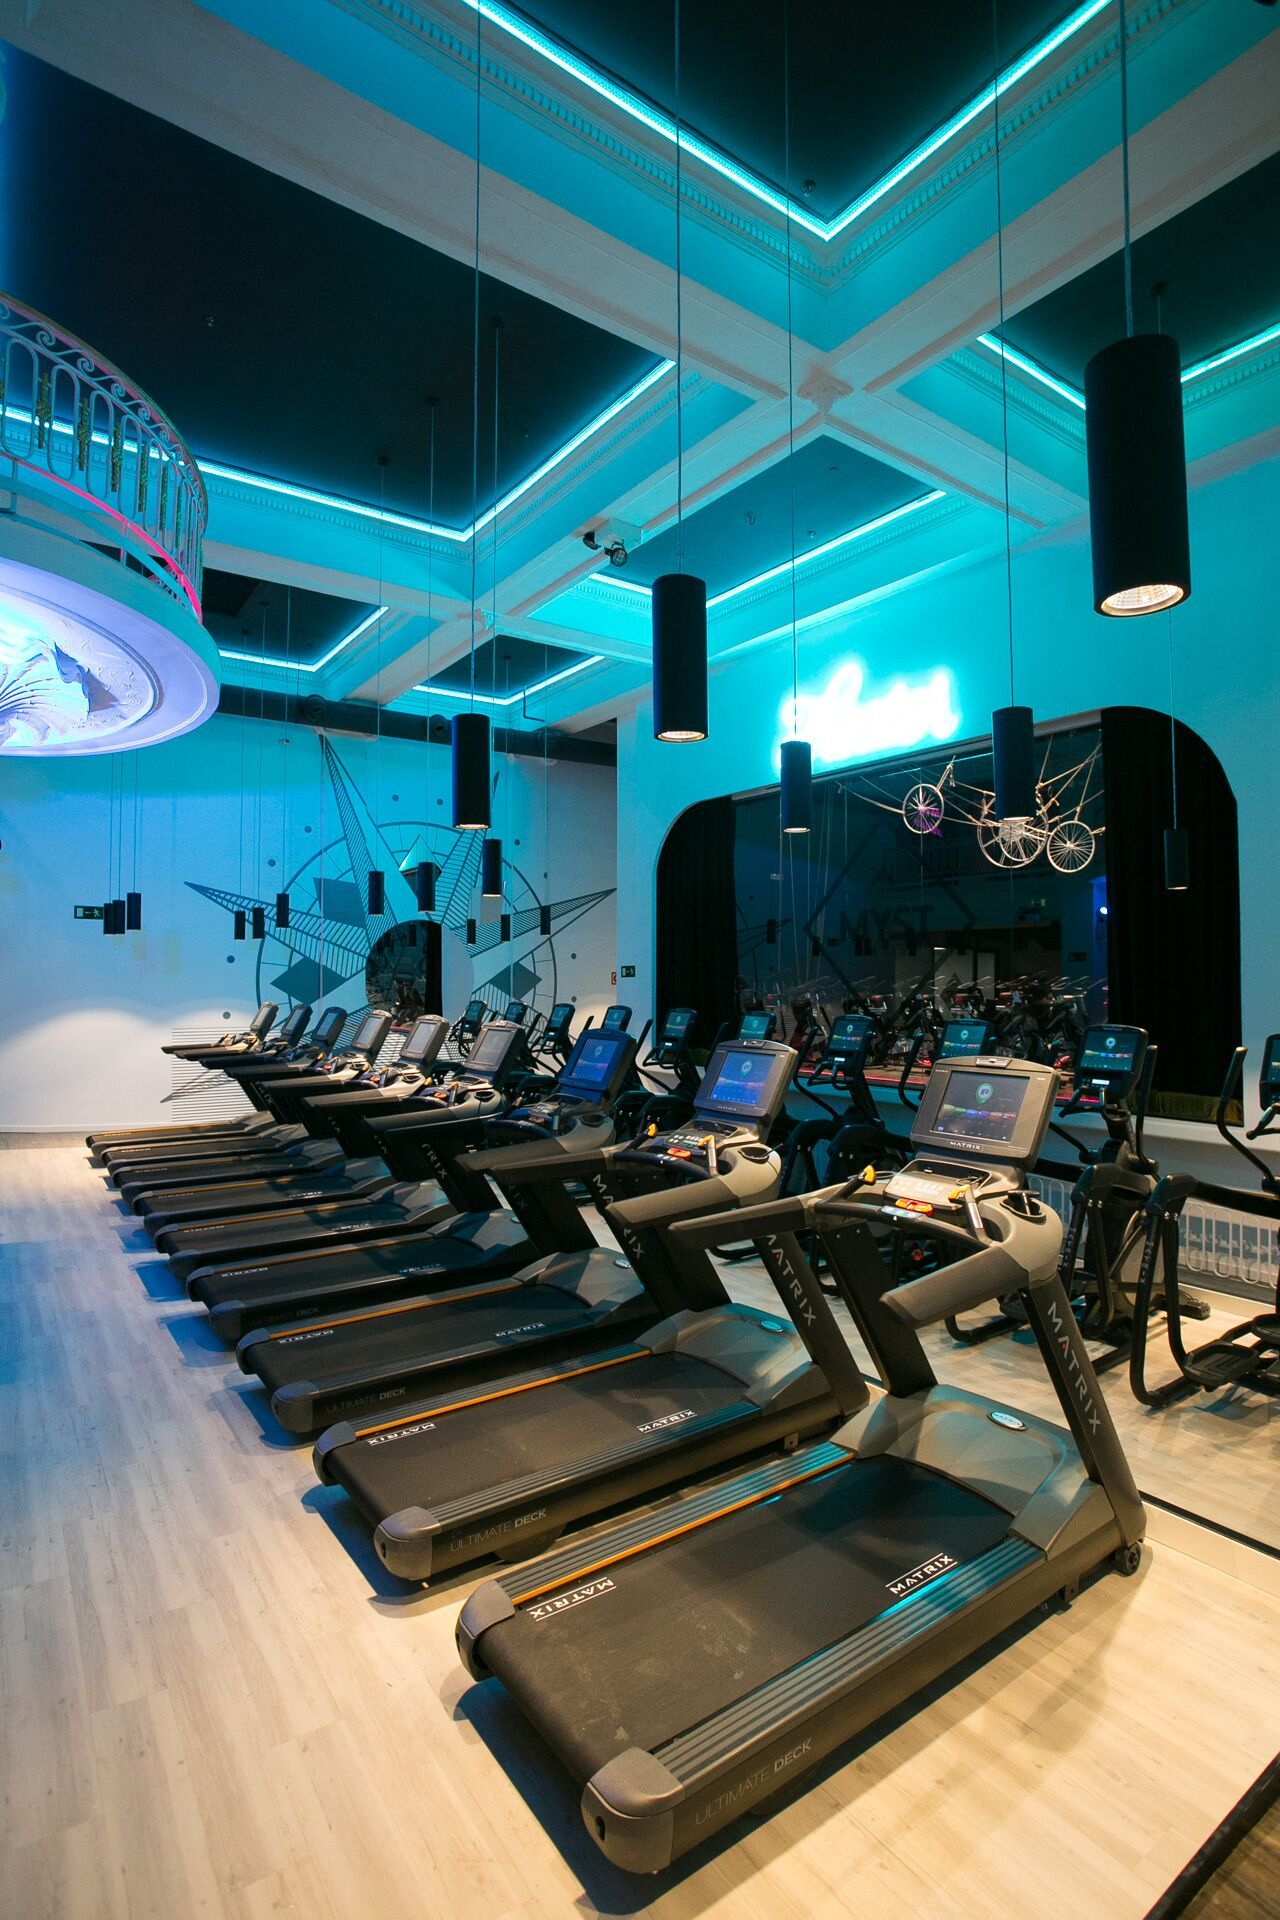 The Myst Gym Club in Madrid looks like a night club: flashy neon lights, resistant floor and people gathered to sweat together! #gerflor #sports #creation #signature #vinyl #floor #gym #madrid #blue #treadmills